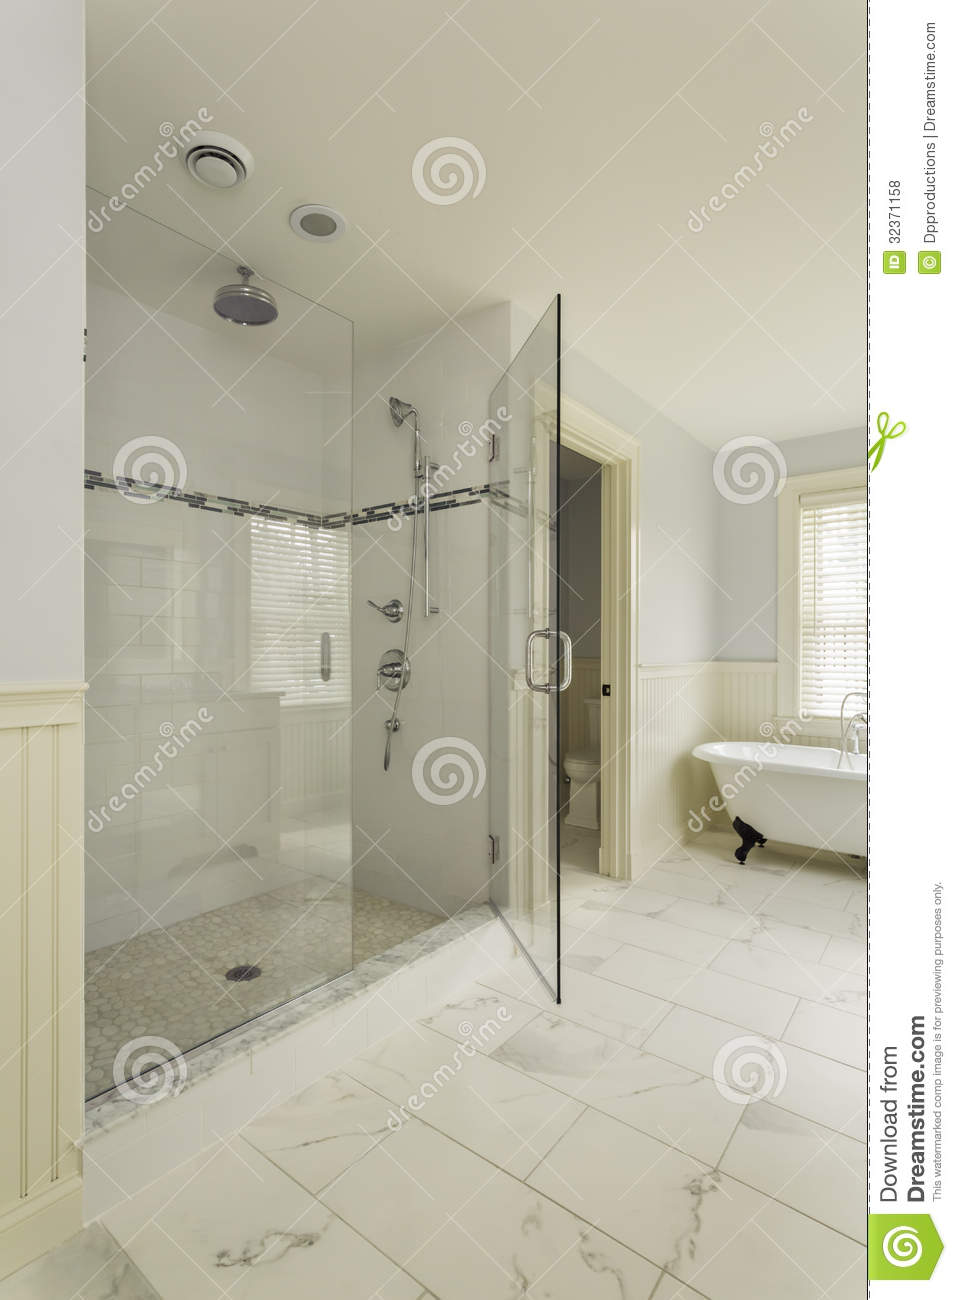 Luxury Master Bathroom With Enclosed Glass Shower Royalty